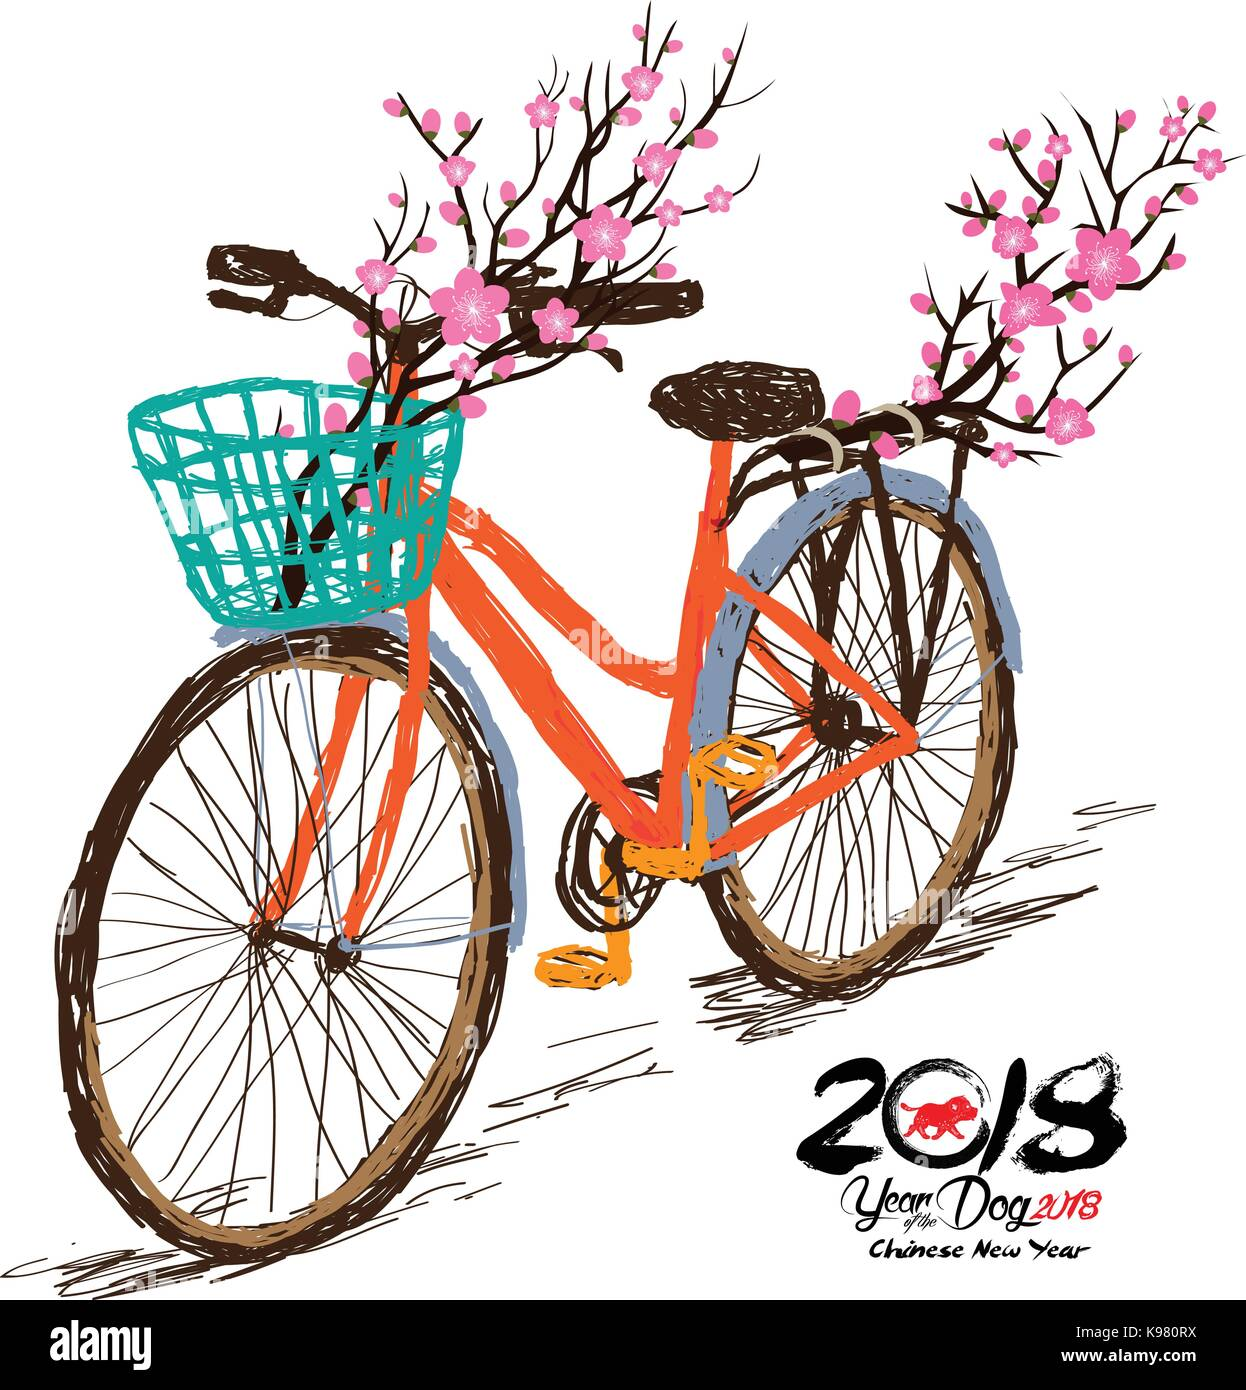 Chinese new year. Hand drawn tintage bicycle with sakura blossom in rear basket. Year of the dog 2018 - Stock Vector